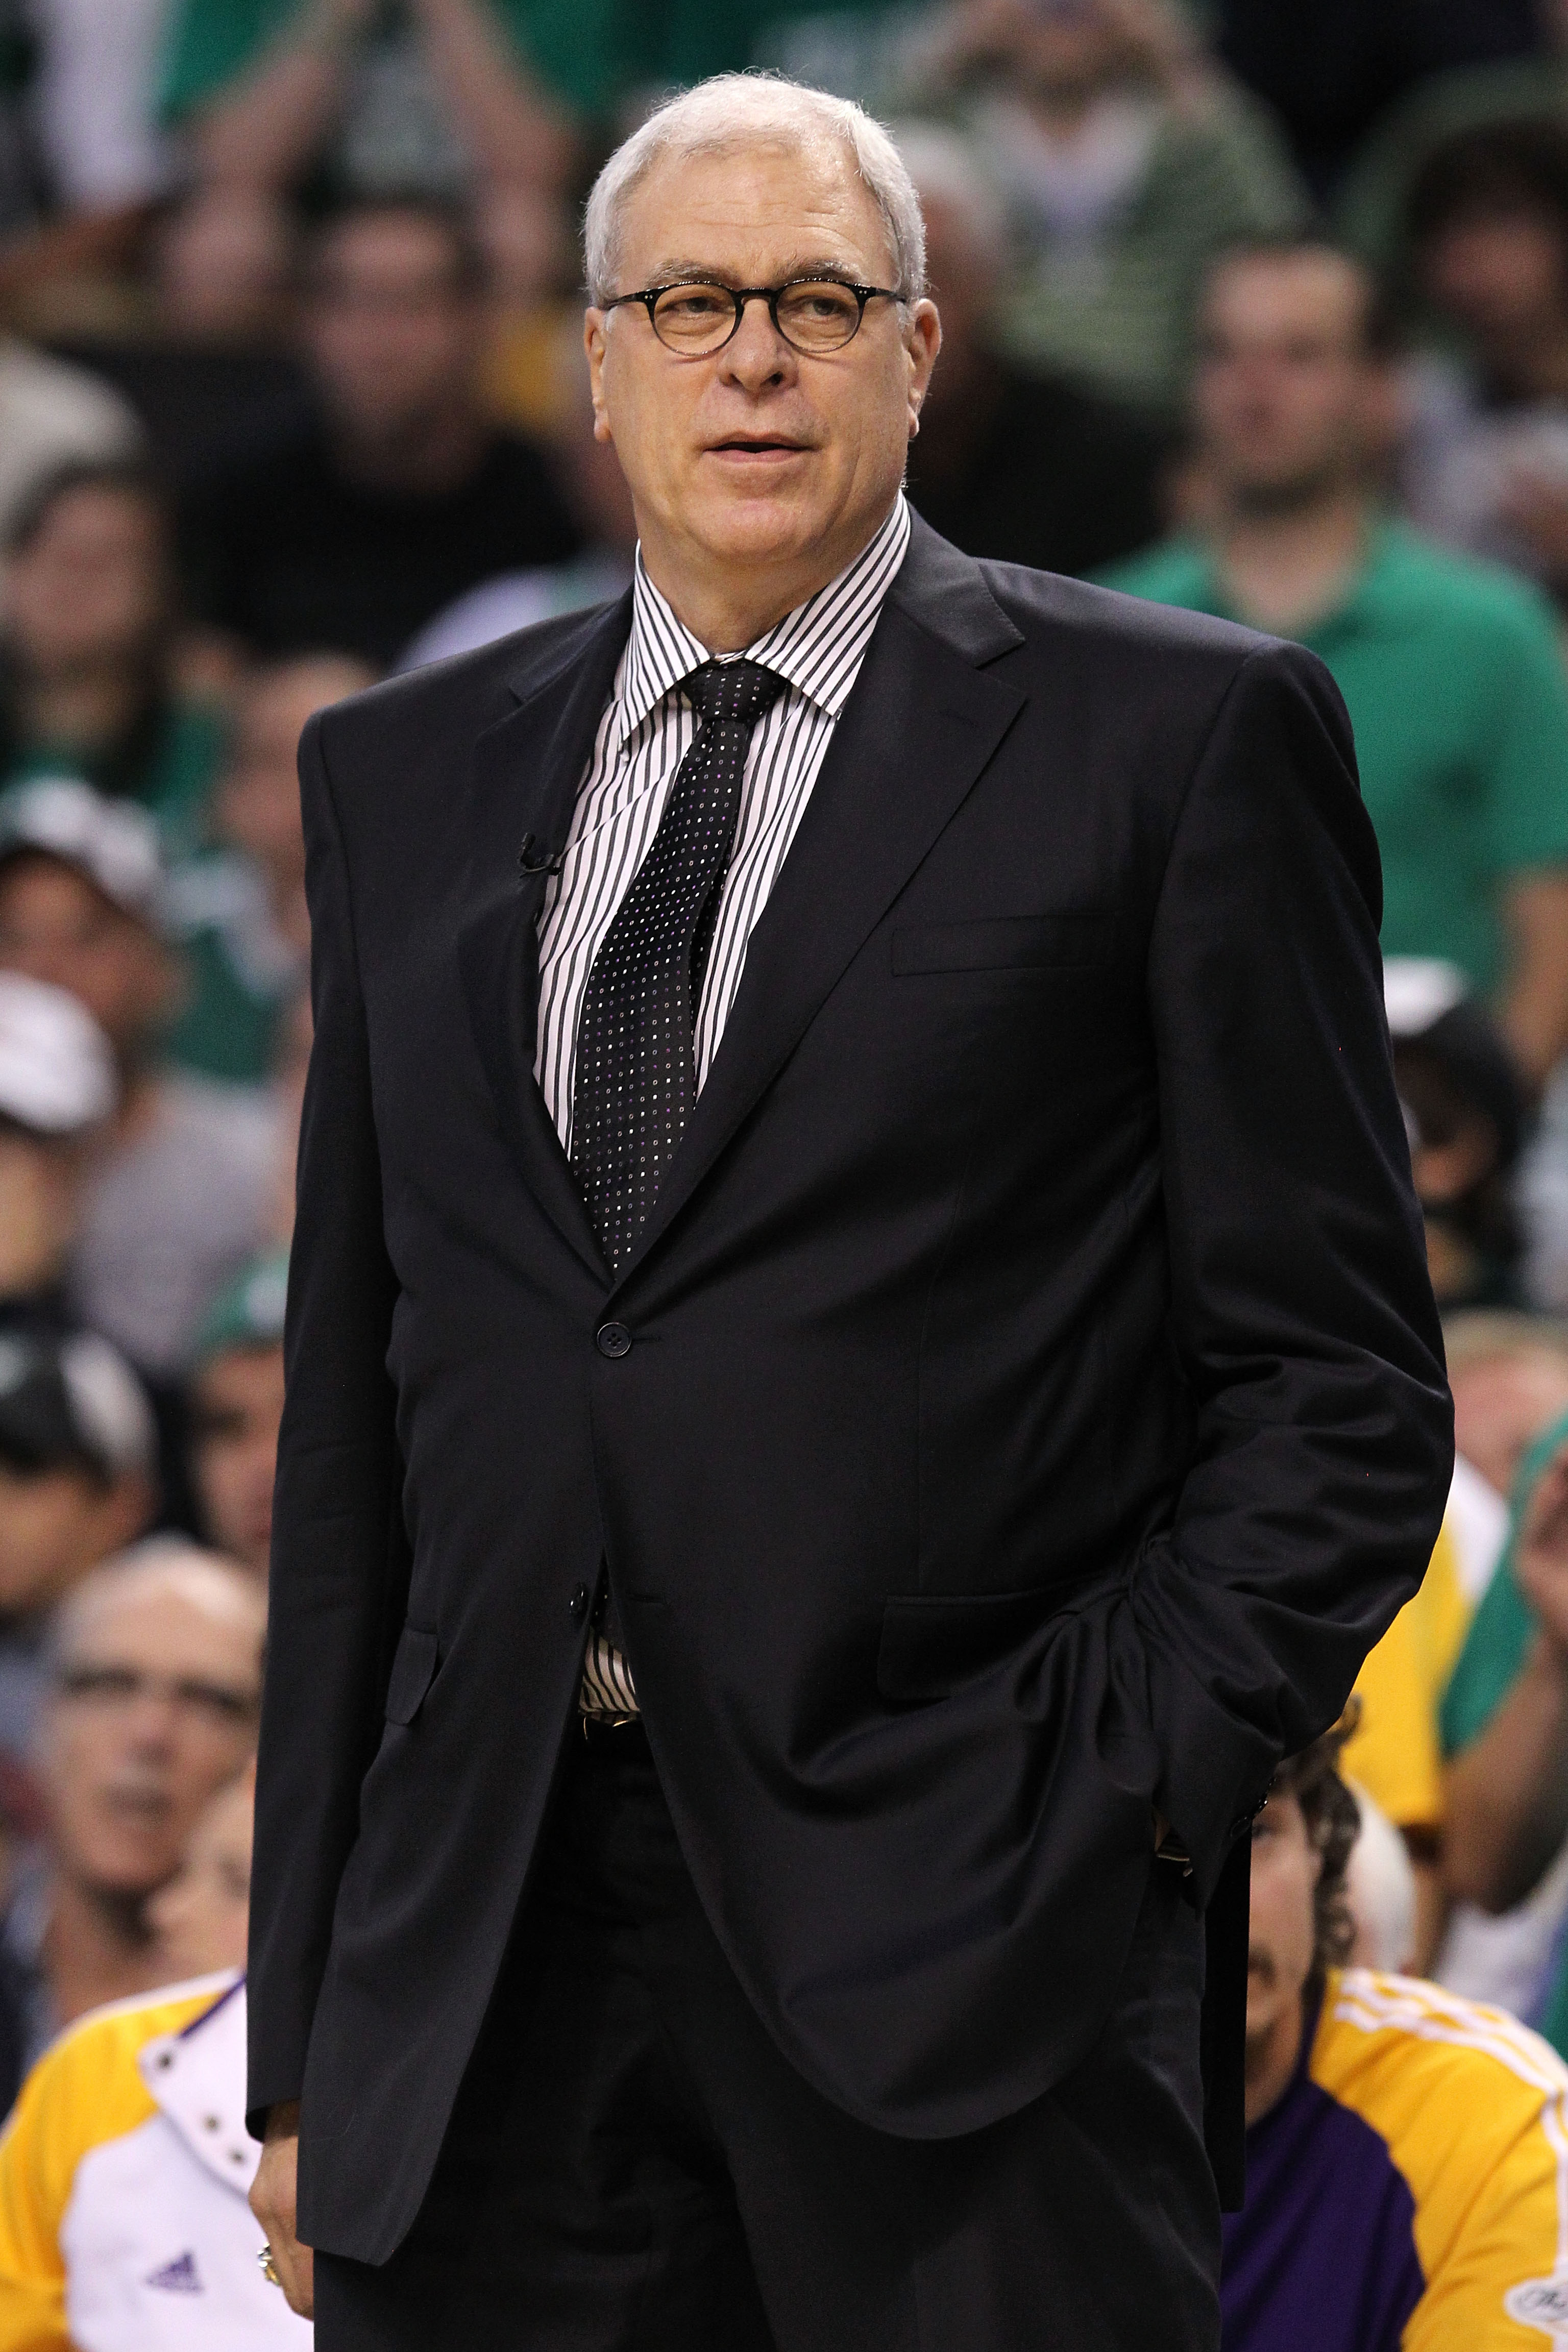 BOSTON - JUNE 13:  Head coach Phil Jackson of the Los Angeles Lakers looks on against the Boston Celtics during Game Five of the 2010 NBA Finals on June 13, 2010 at TD Garden in Boston, Massachusetts. The Celtics won 92-86. NOTE TO USER: User expressly ac